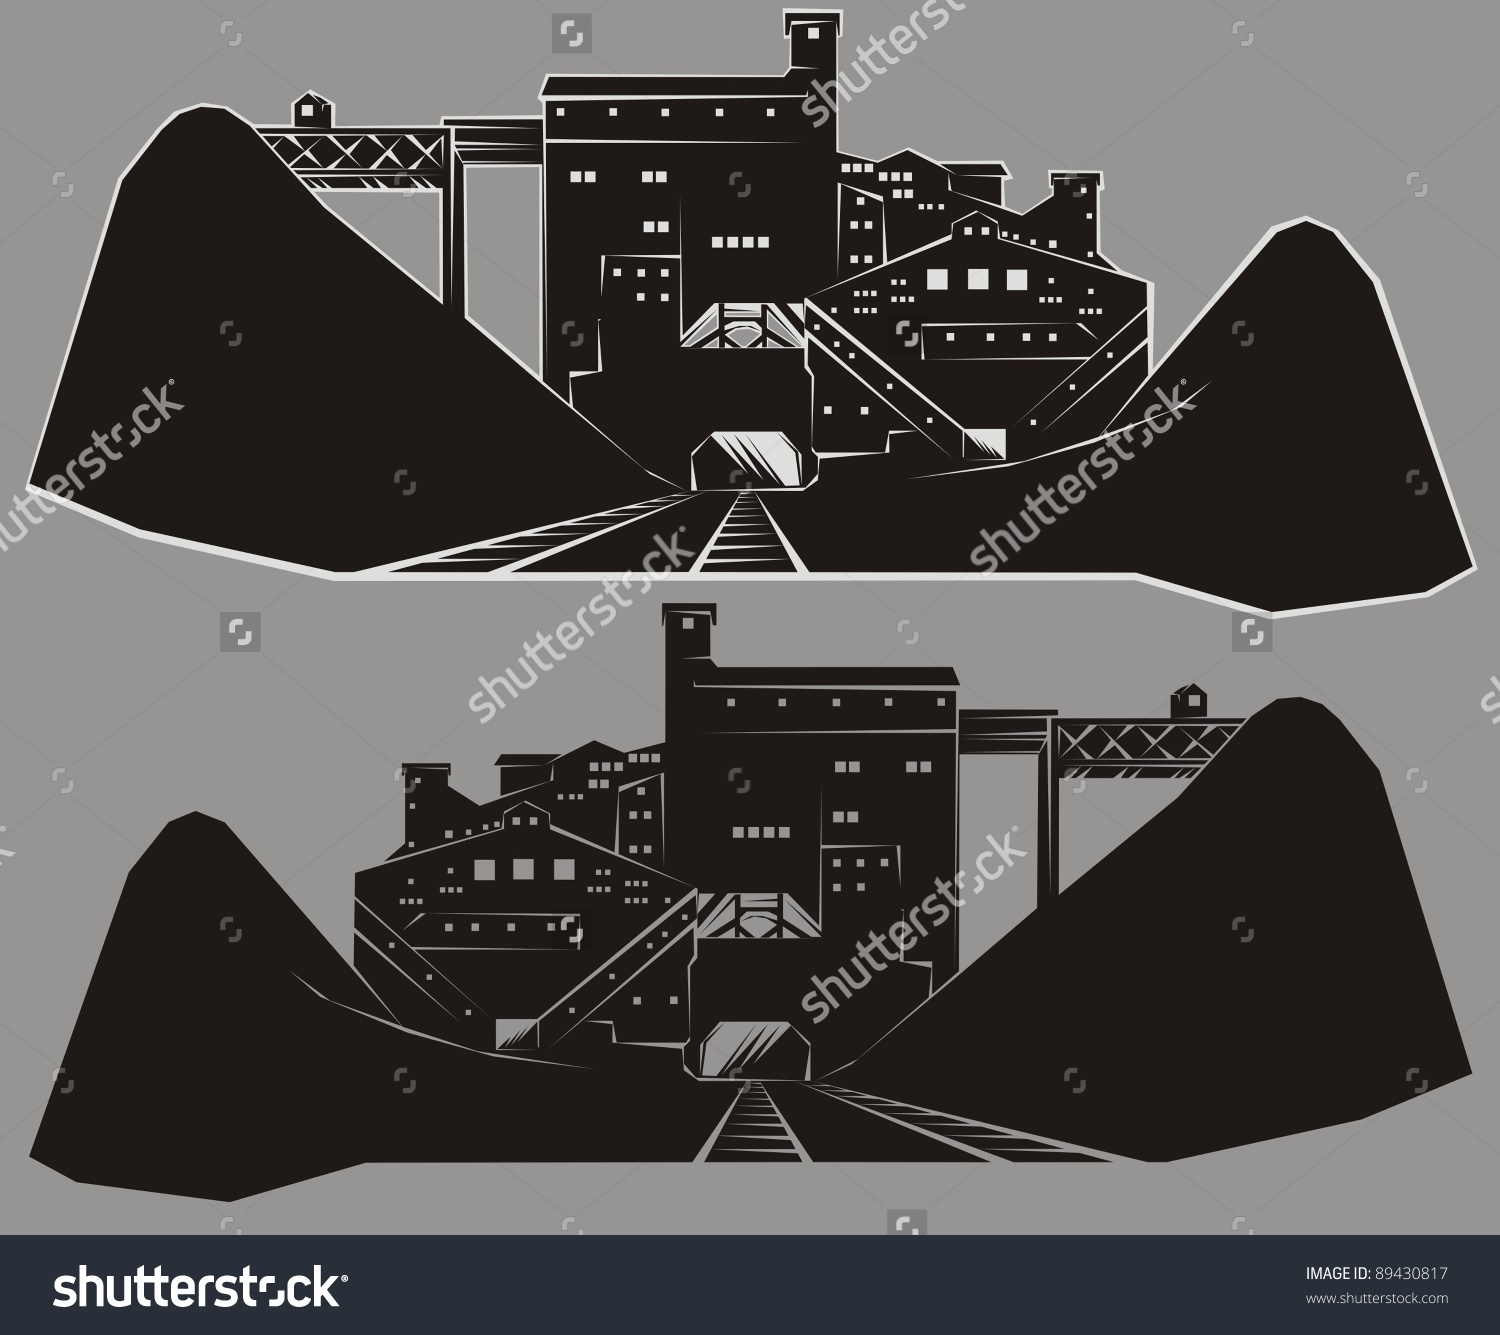 Coal mine outline clipart.